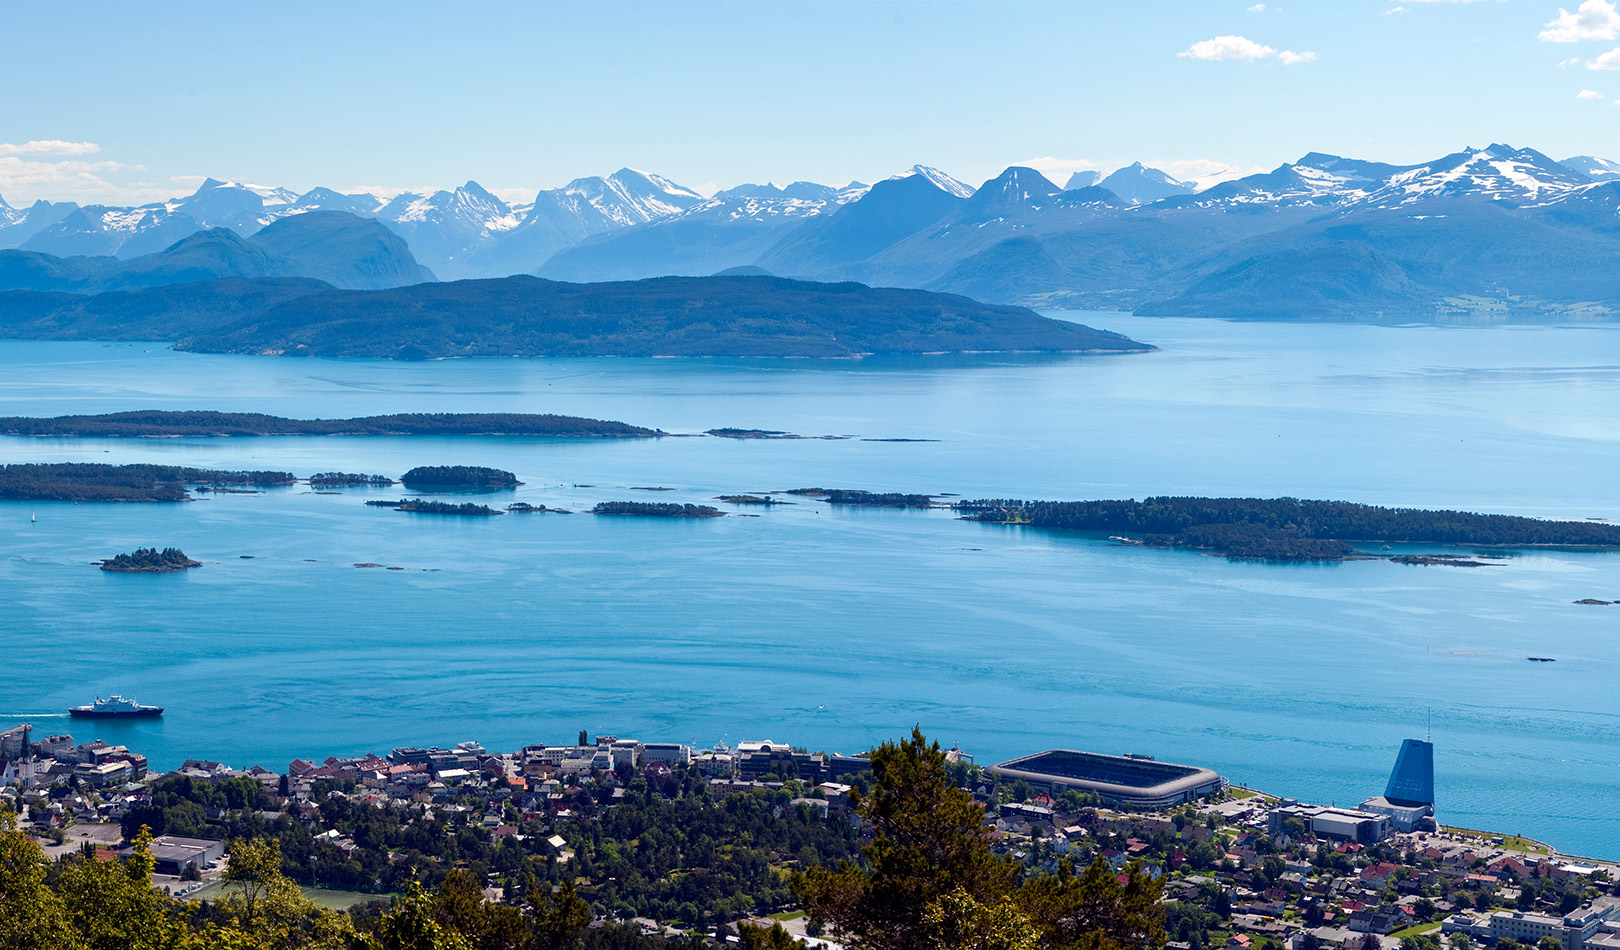 Panoramic view of the city of Molde from the city hill Varden, Møre og Romsdal.